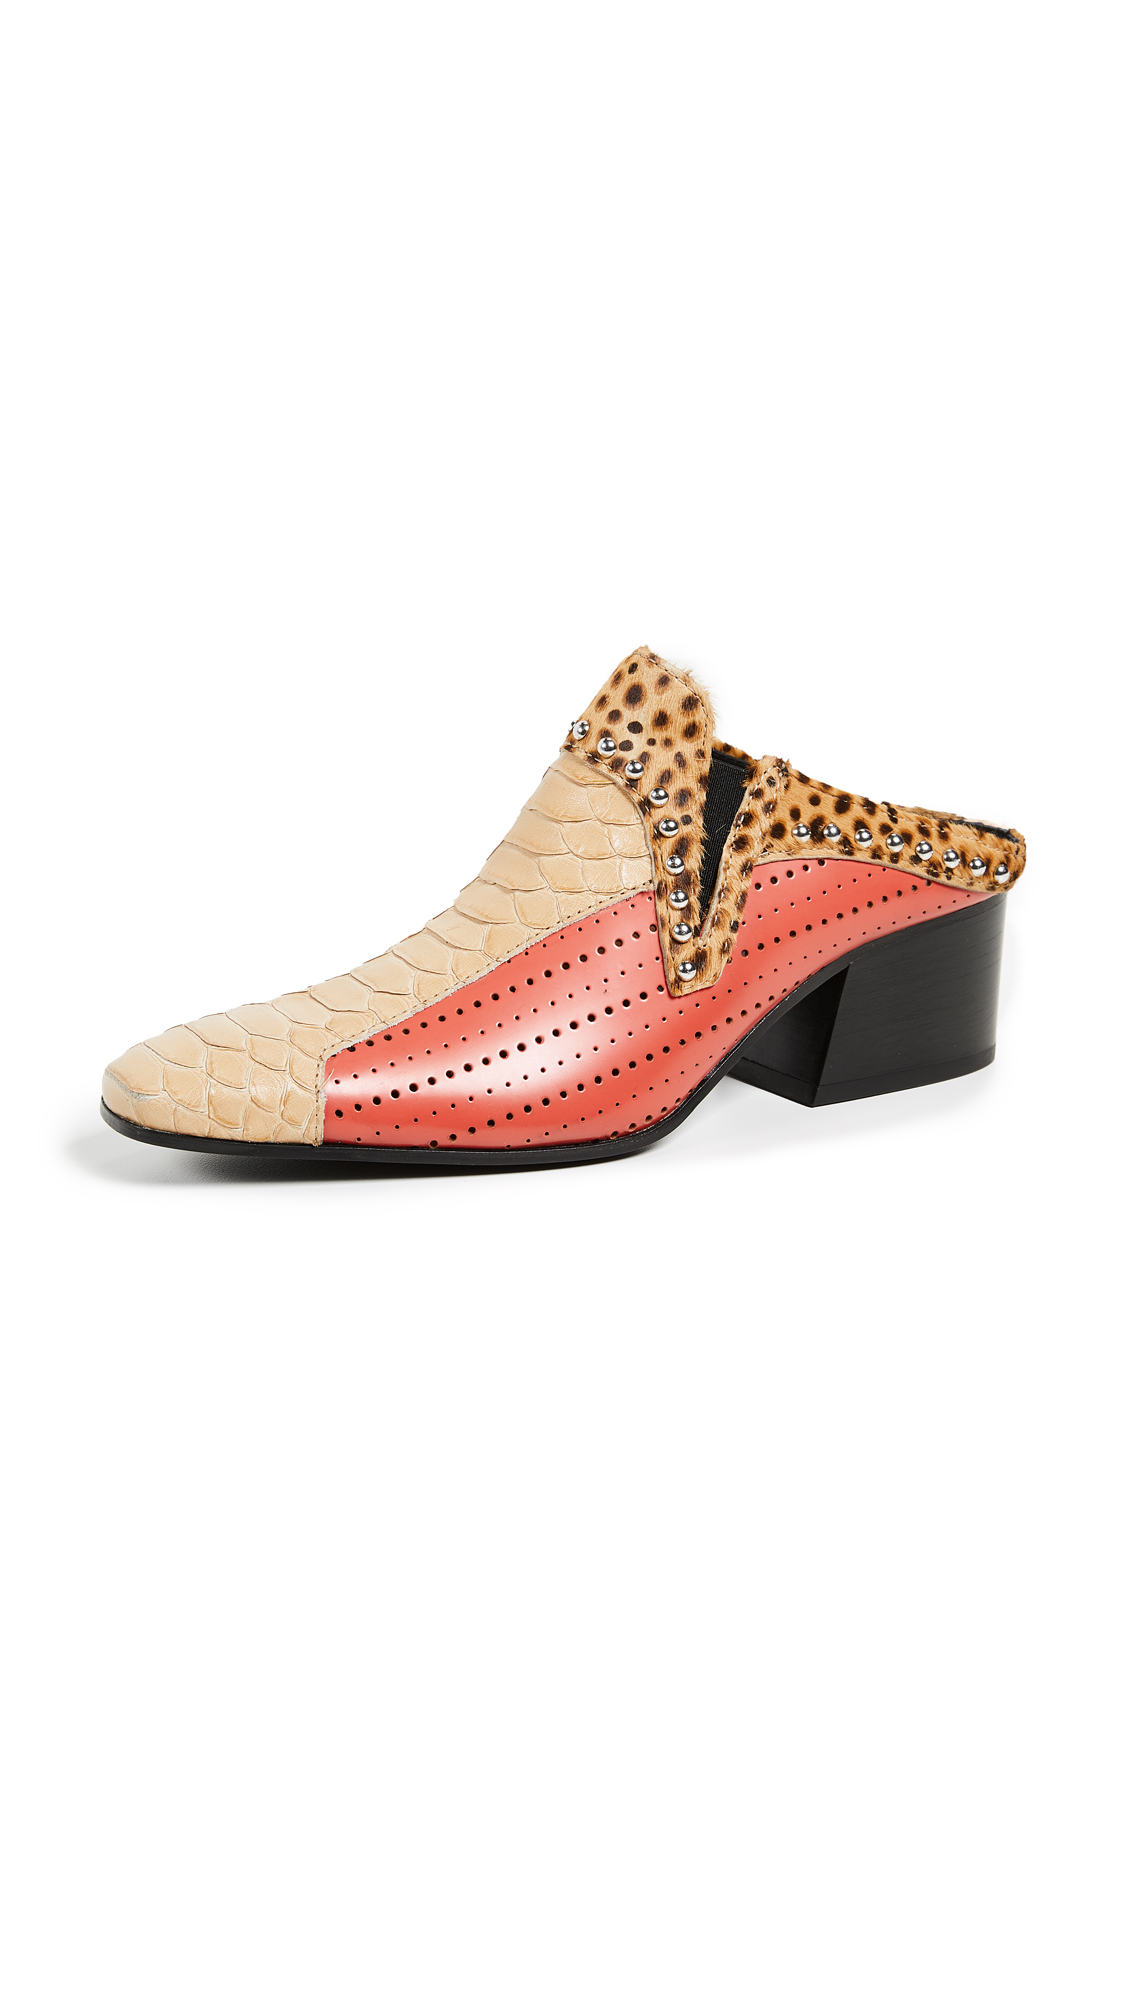 Acne Studios Karmir Multi Mules - Beige/Papaya Orange